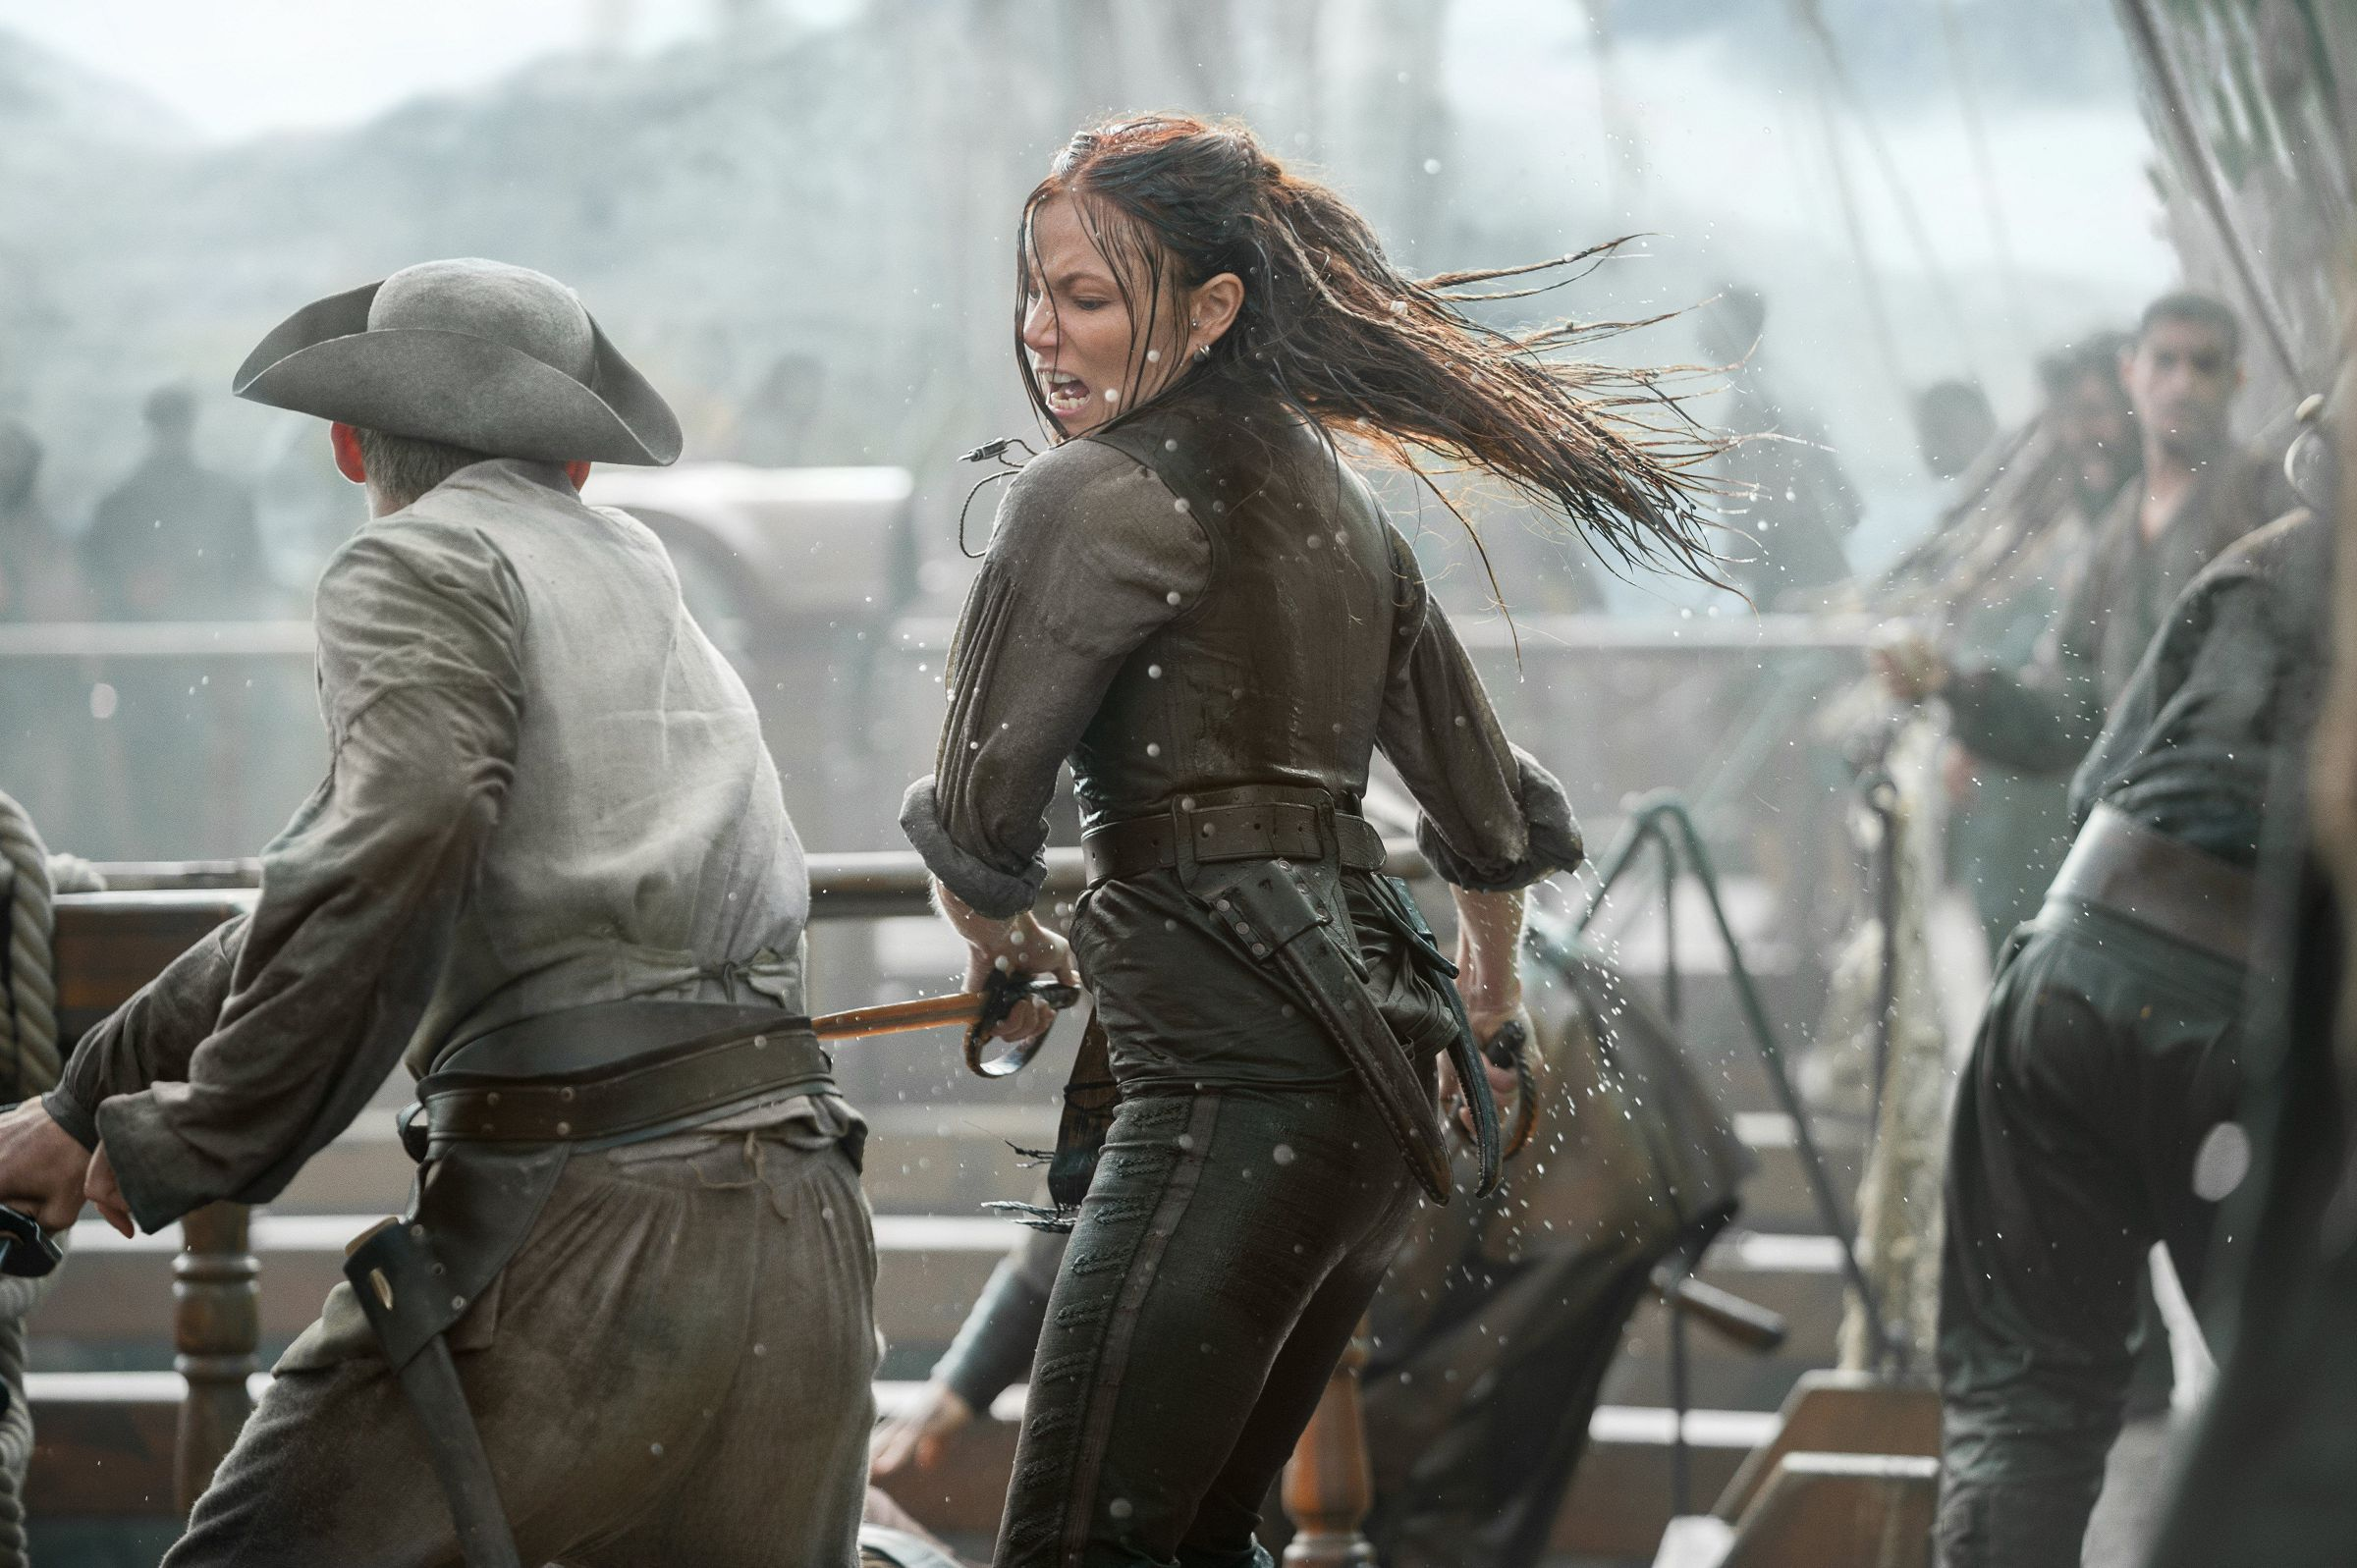 Anne Bonny Background